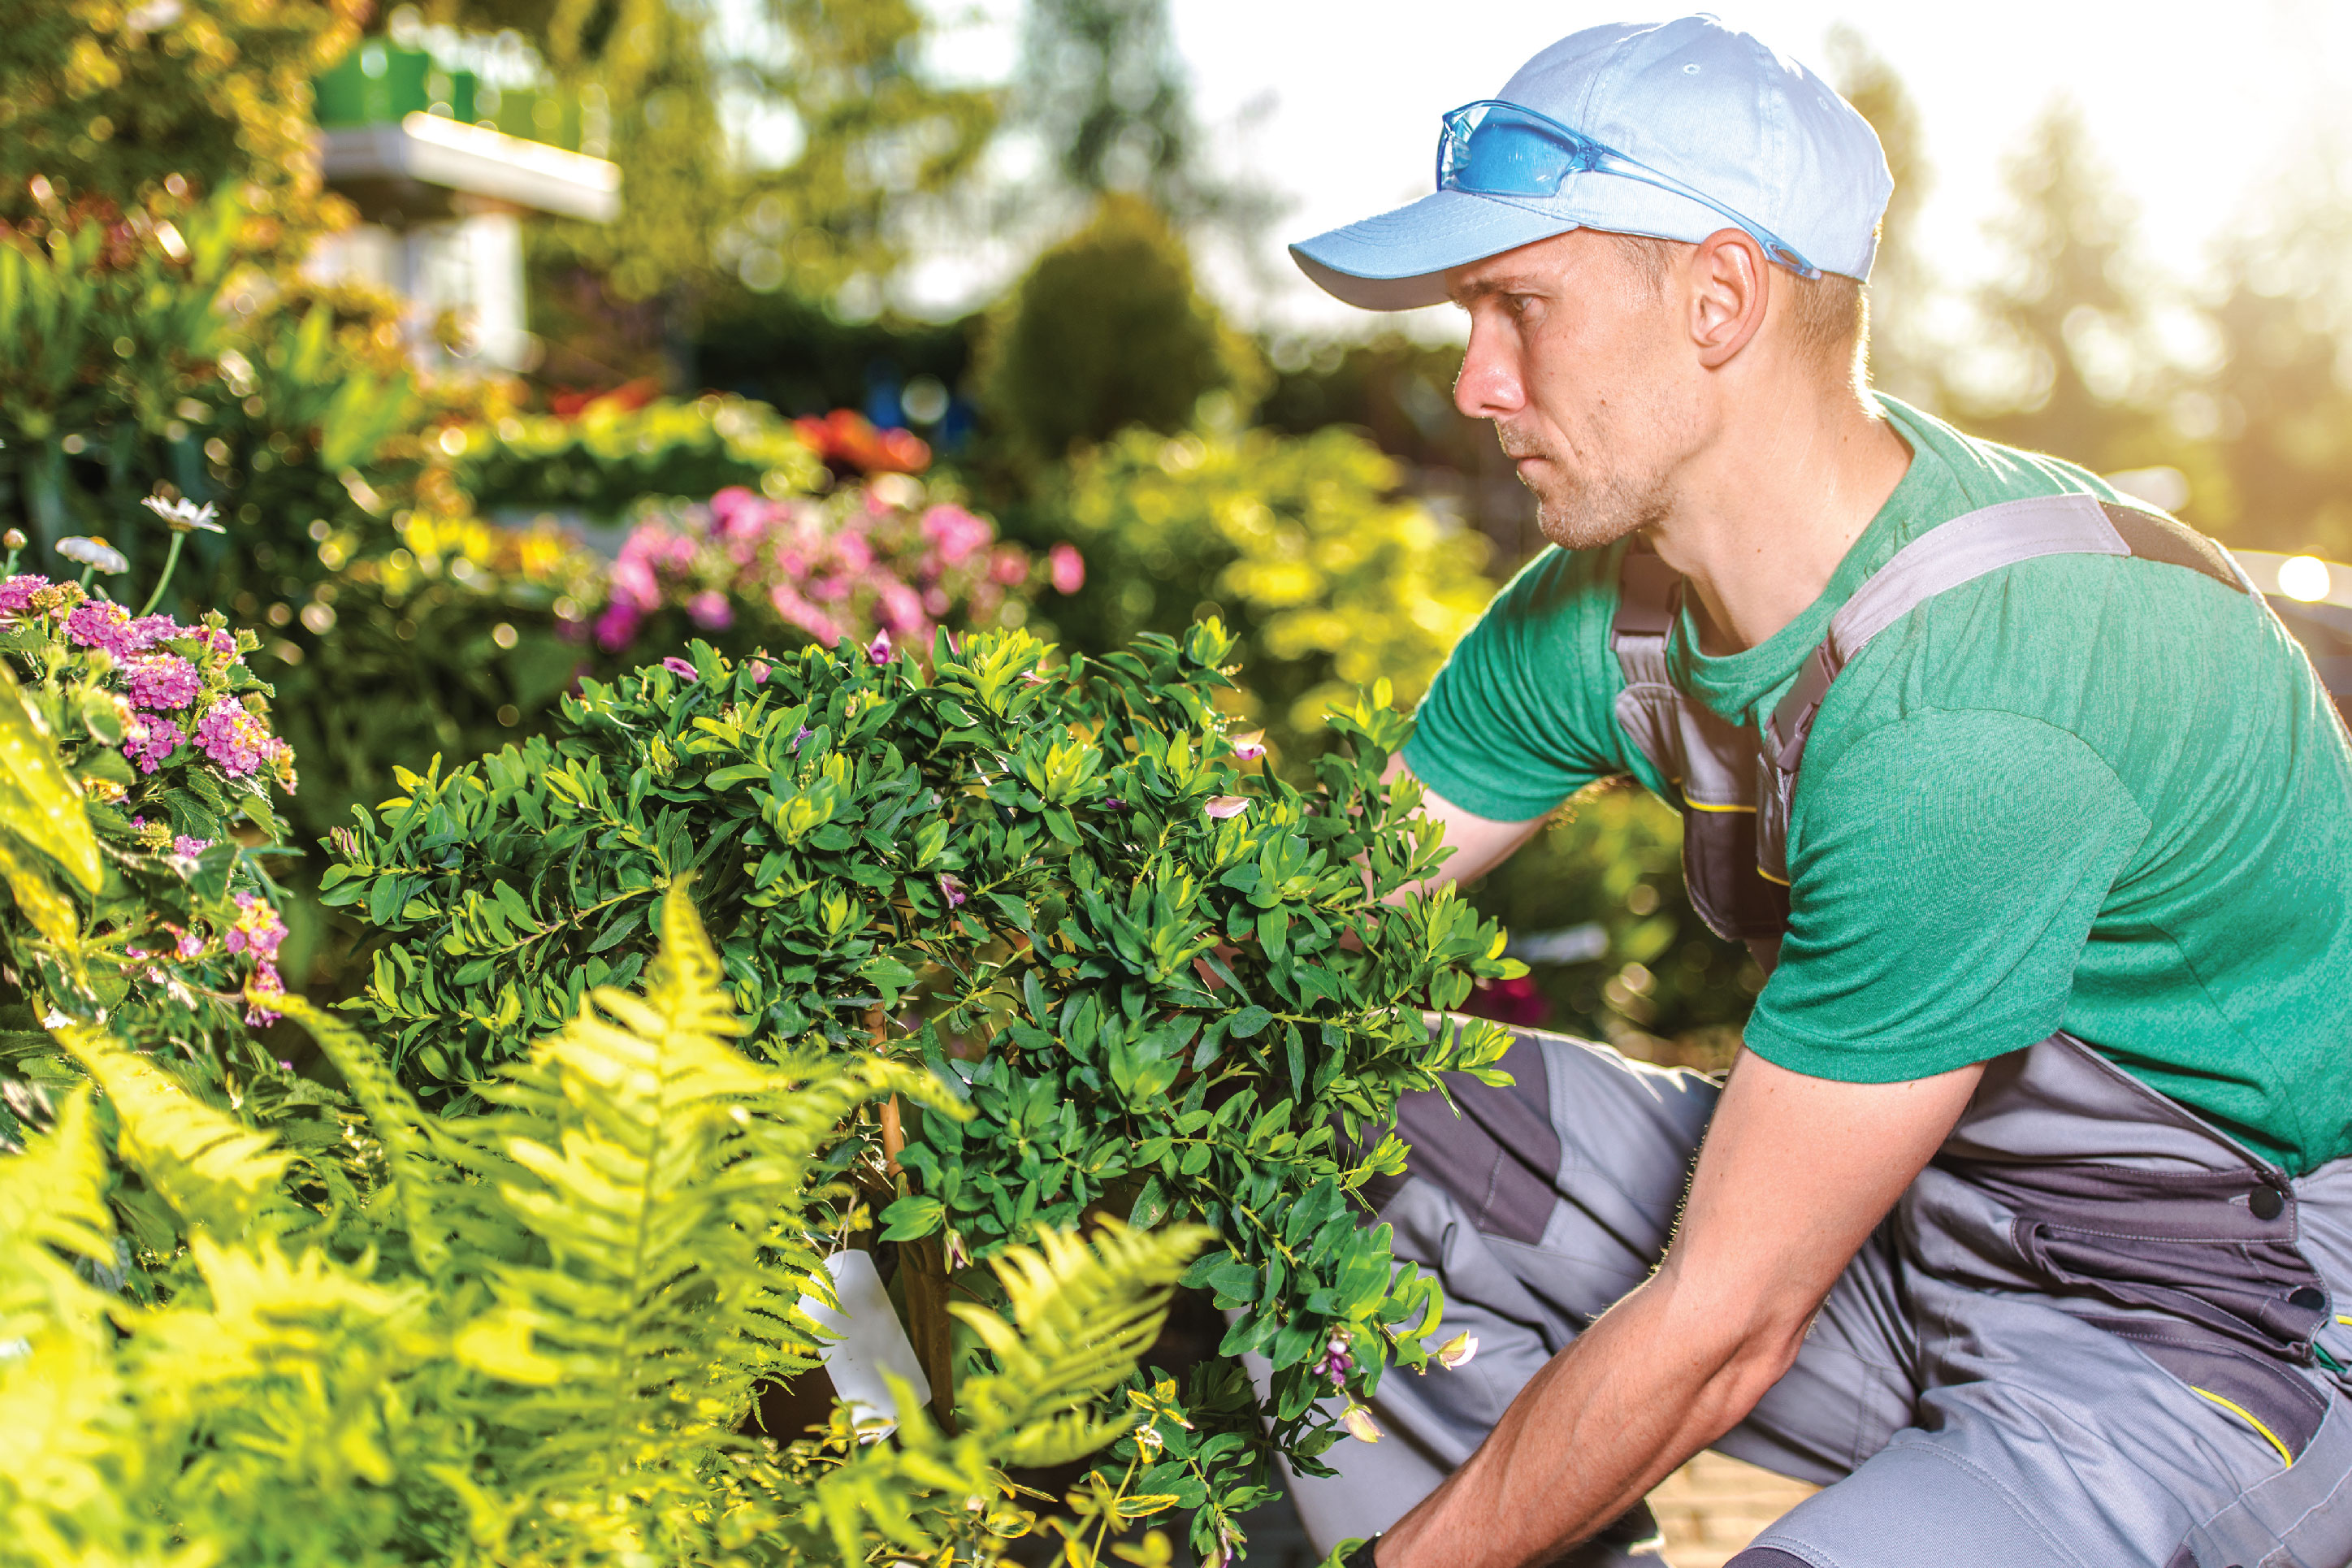 man adding plants and shrubs to landscaping in the yard of a home